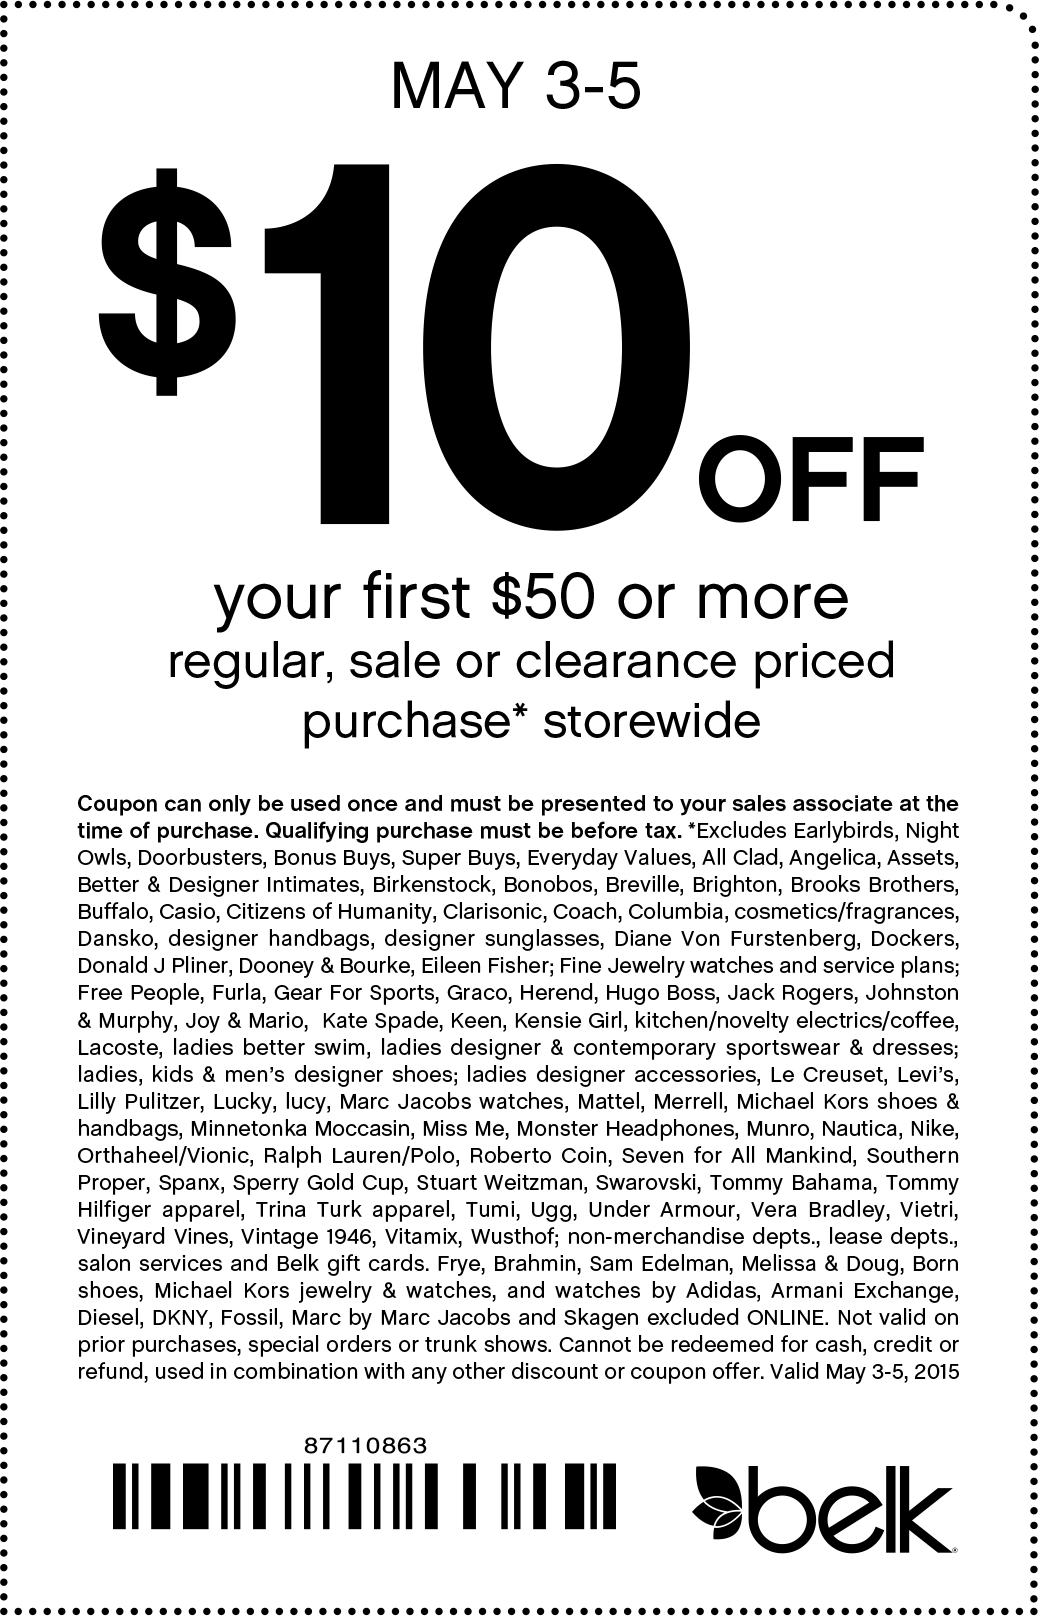 Belk Coupon May 2017 $10 off $50 at Belk, or online via promo code 87110863